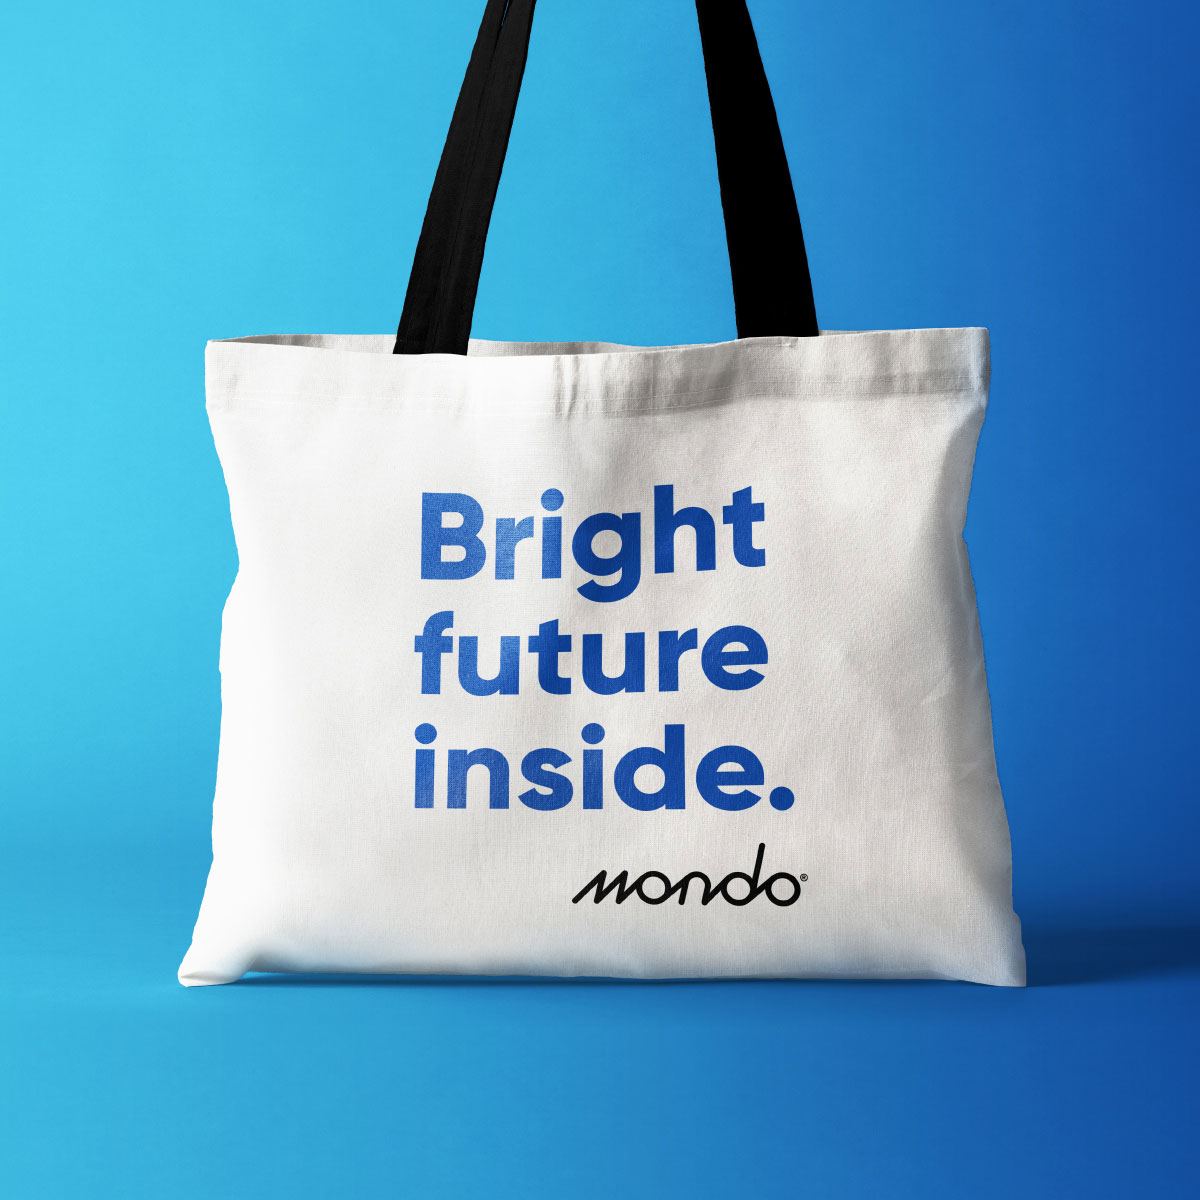 Mondo Tote Bag Design for internal brand launch